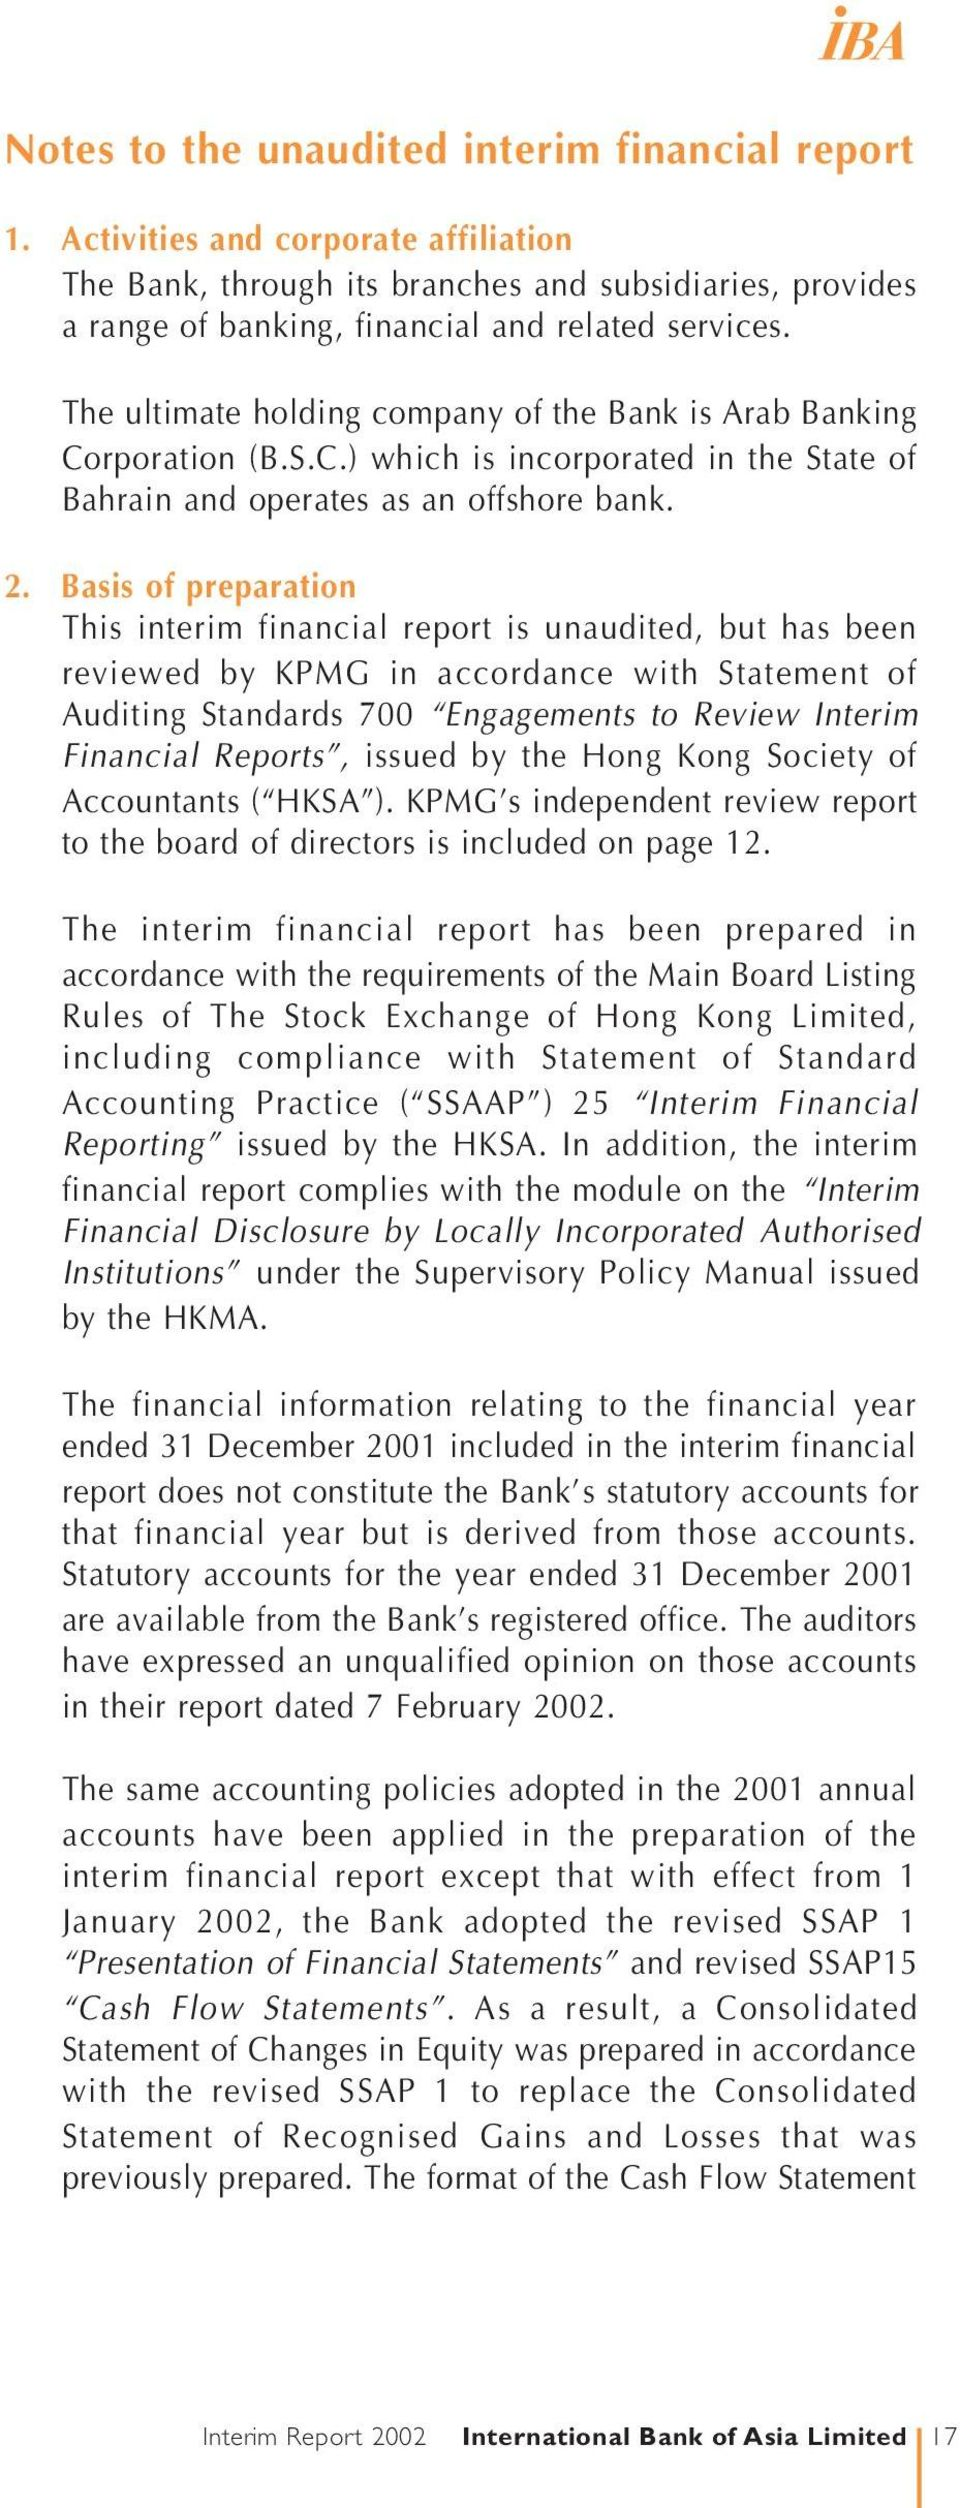 Basis of preparation This interim financial report is unaudited, but has been reviewed by KPMG in accordance with Statement of Auditing Standards 700 Engagements to Review Interim Financial Reports,